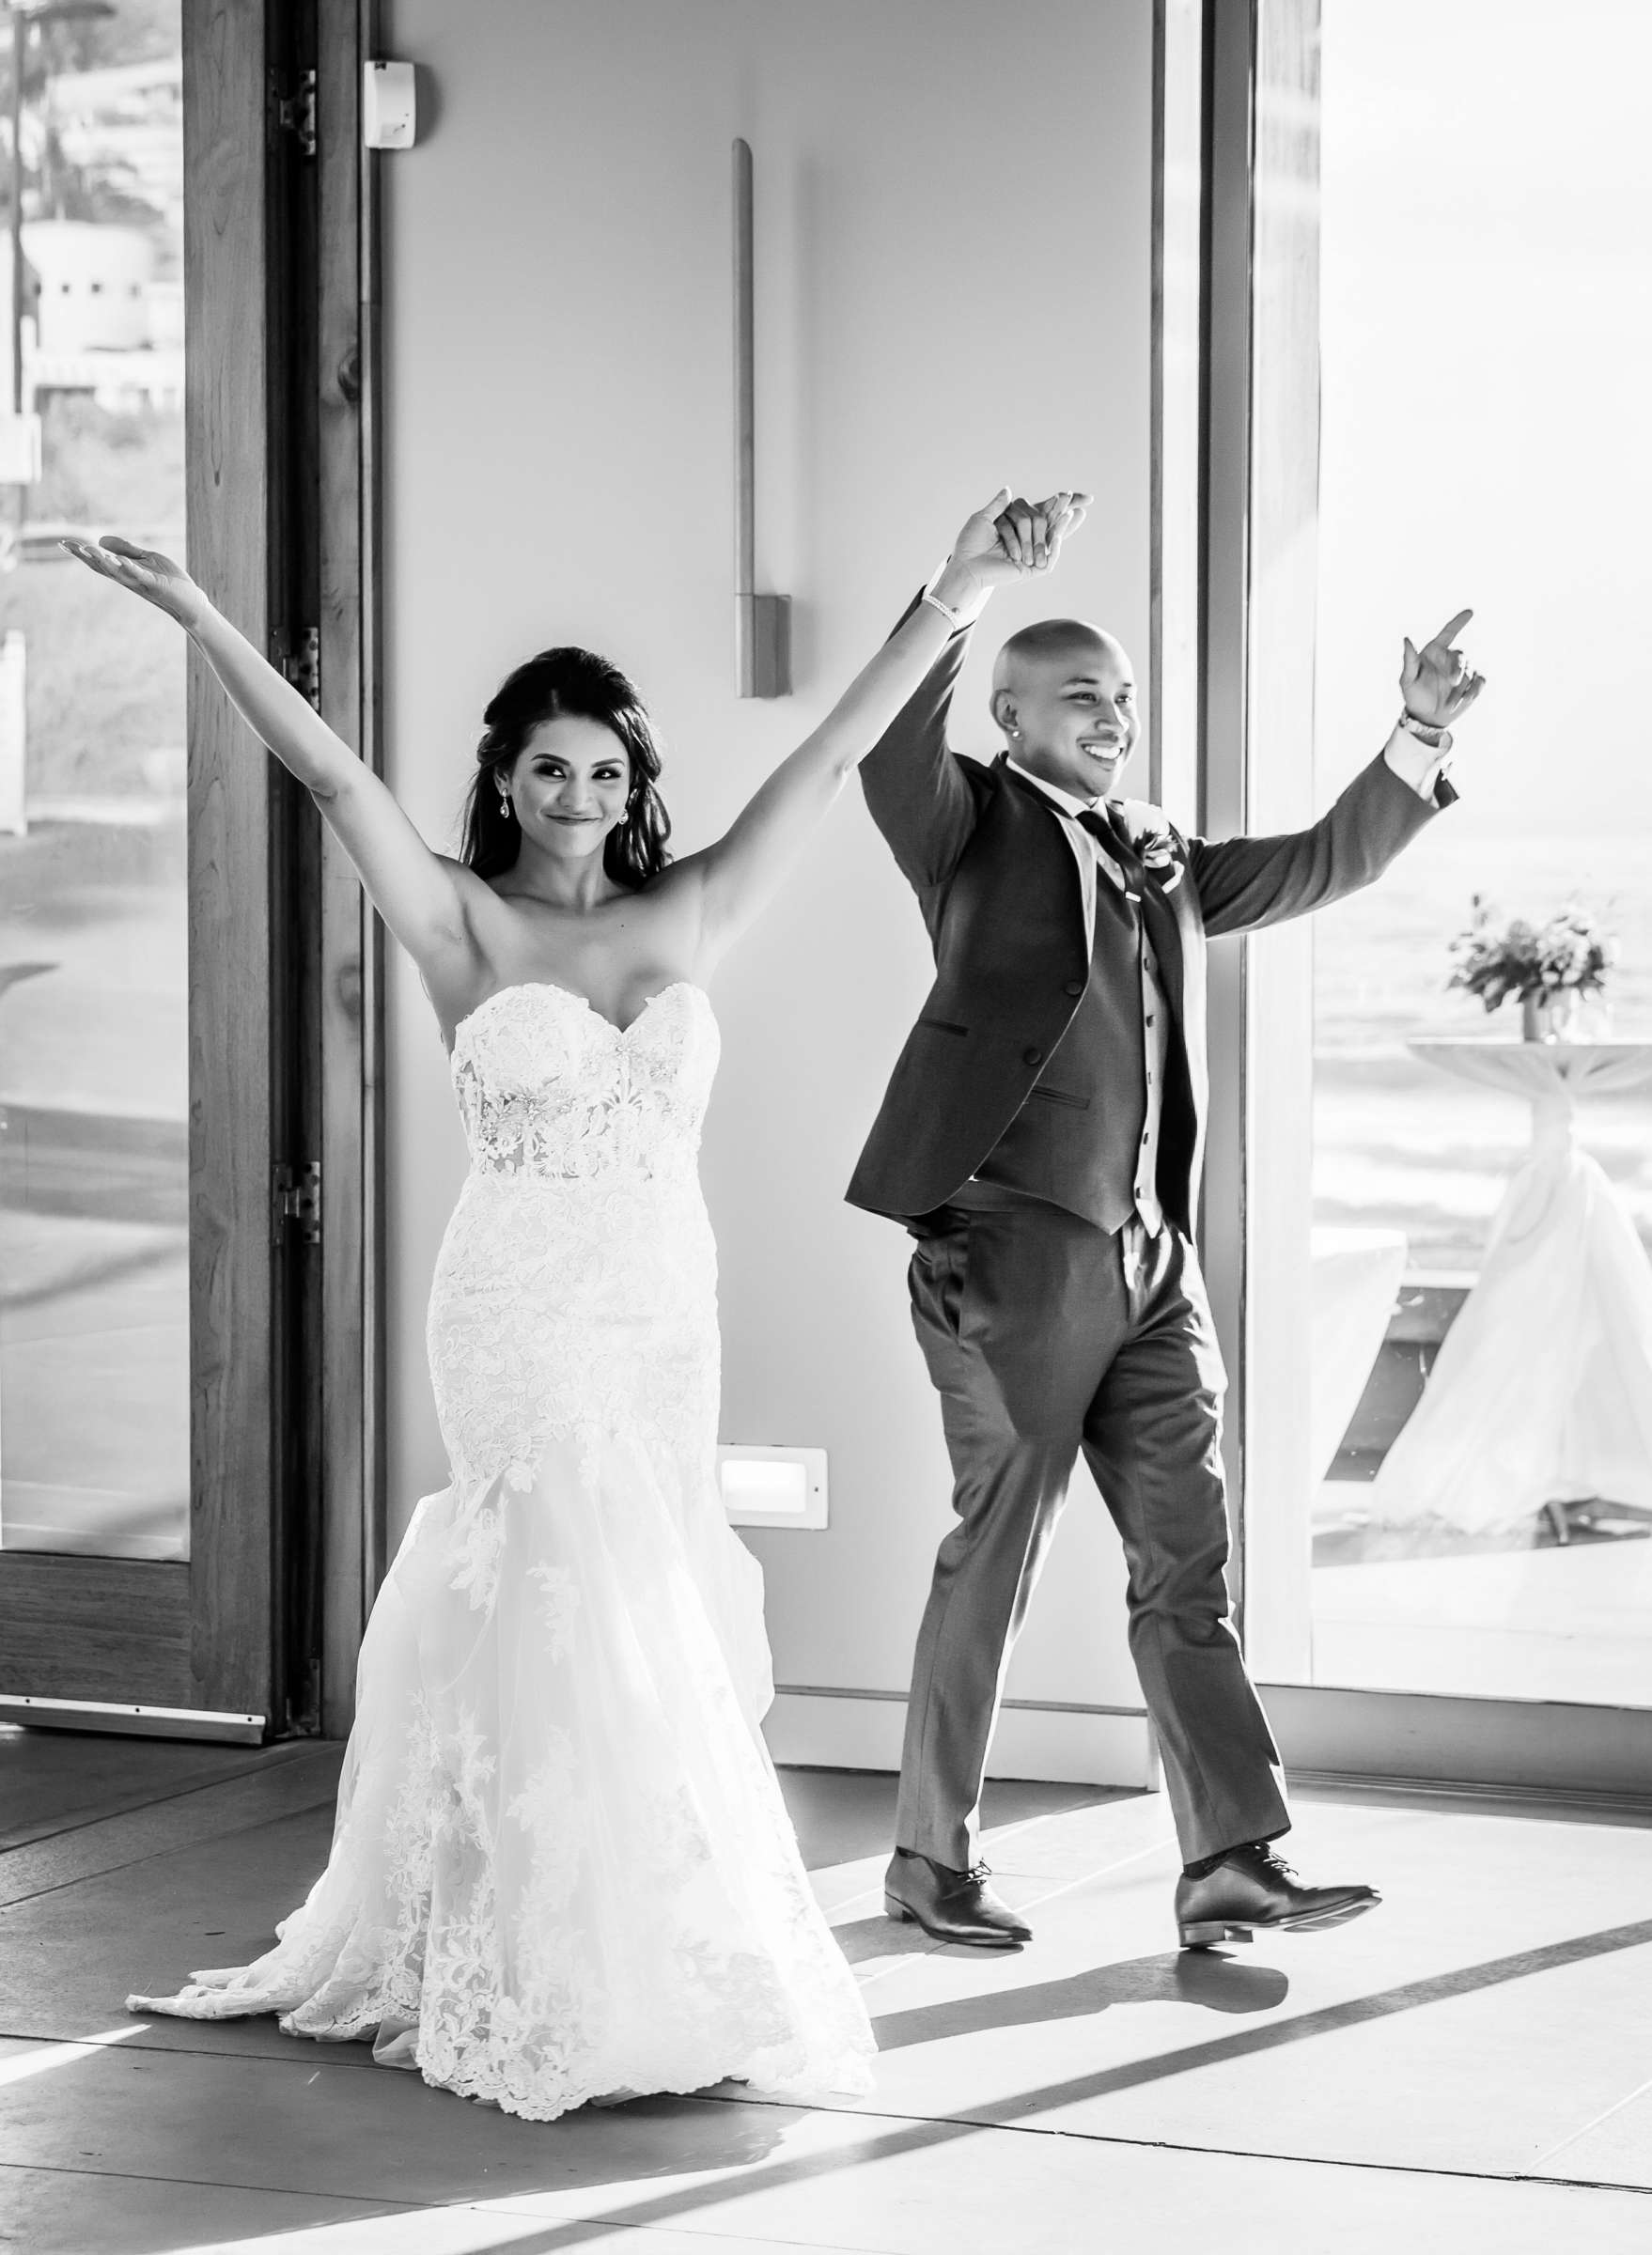 Scripps Seaside Forum Wedding coordinated by Lavish Weddings, Cindy and Justin Wedding Photo #381850 by True Photography